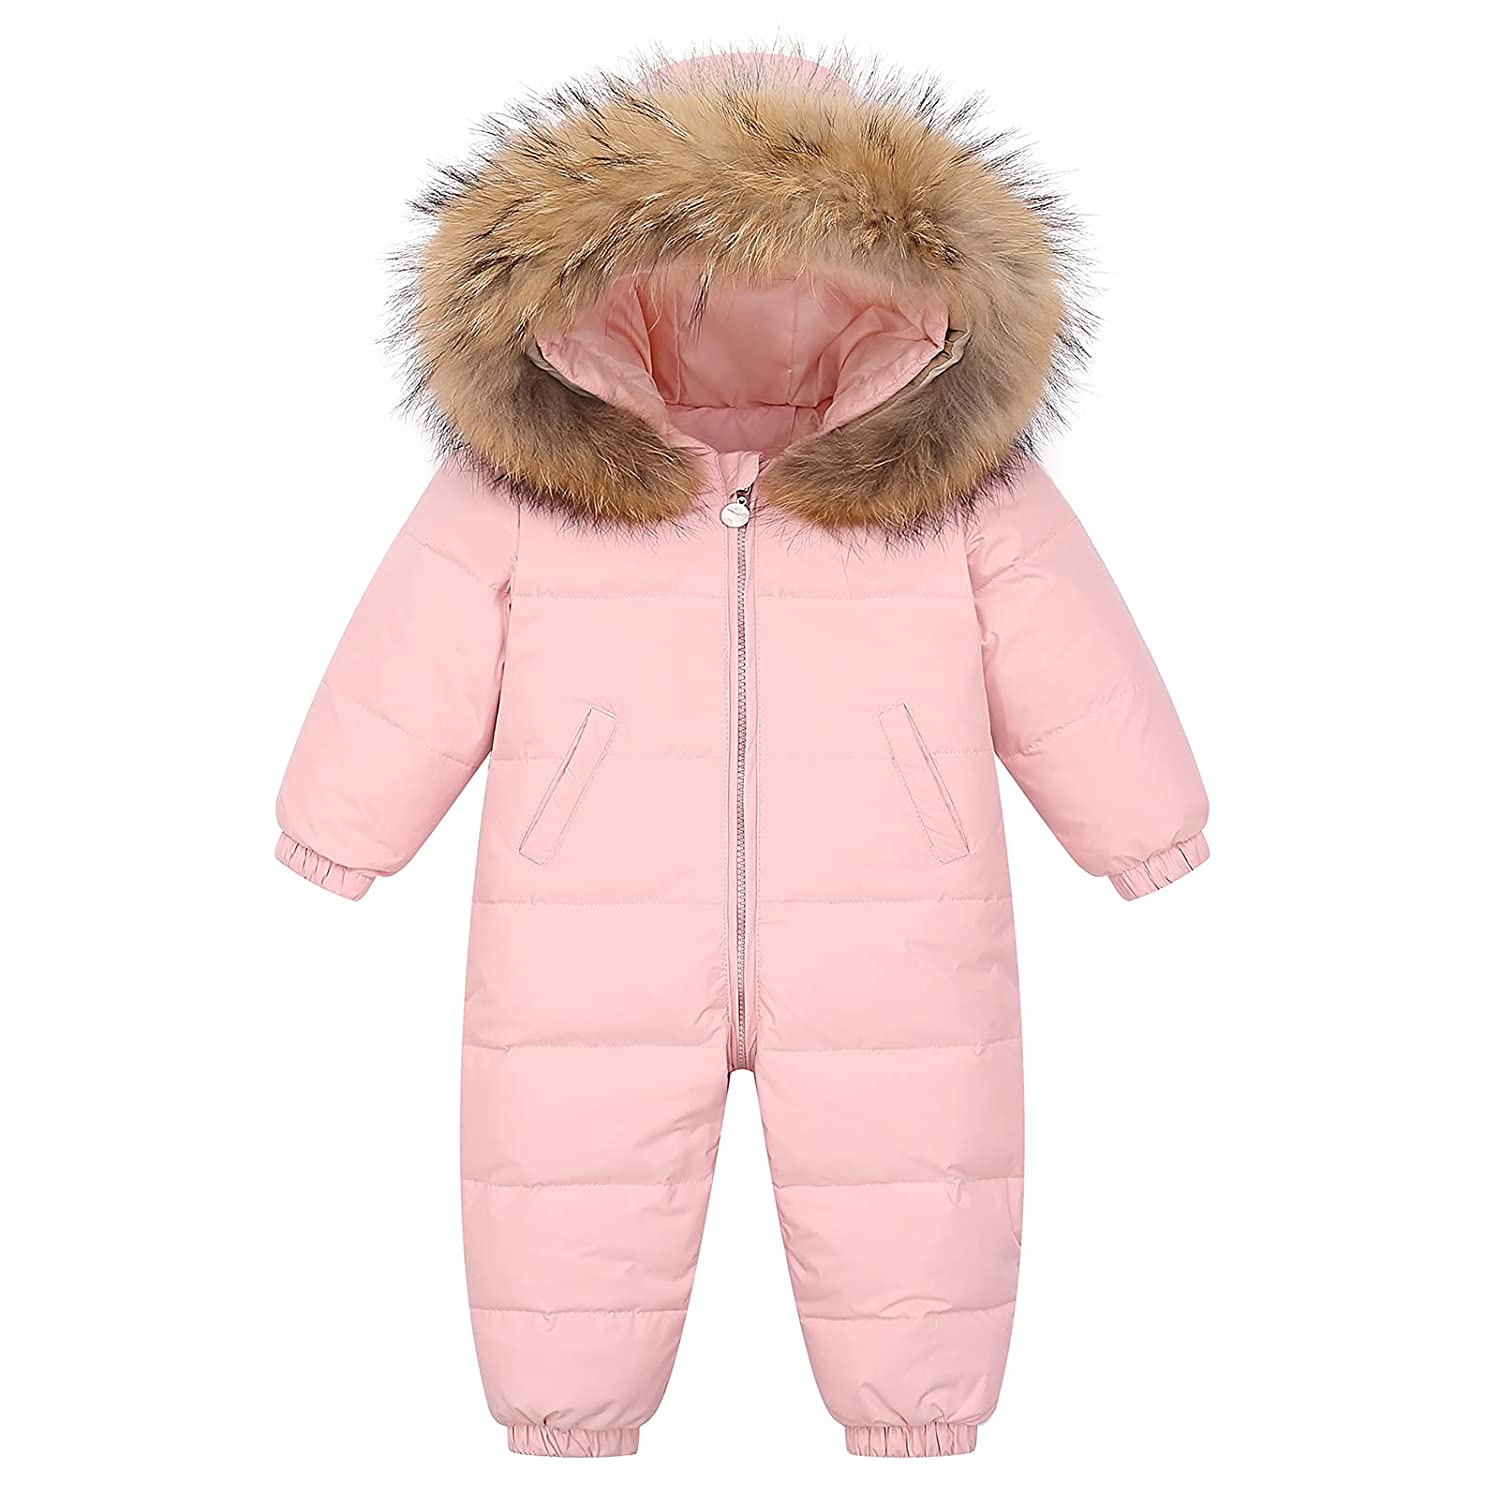 Baby Snowsuit Romper Winter Down Jacket Infant Skisuit Boys Girls Hooded Jumpsuit Outfit Pink 18-24 Months